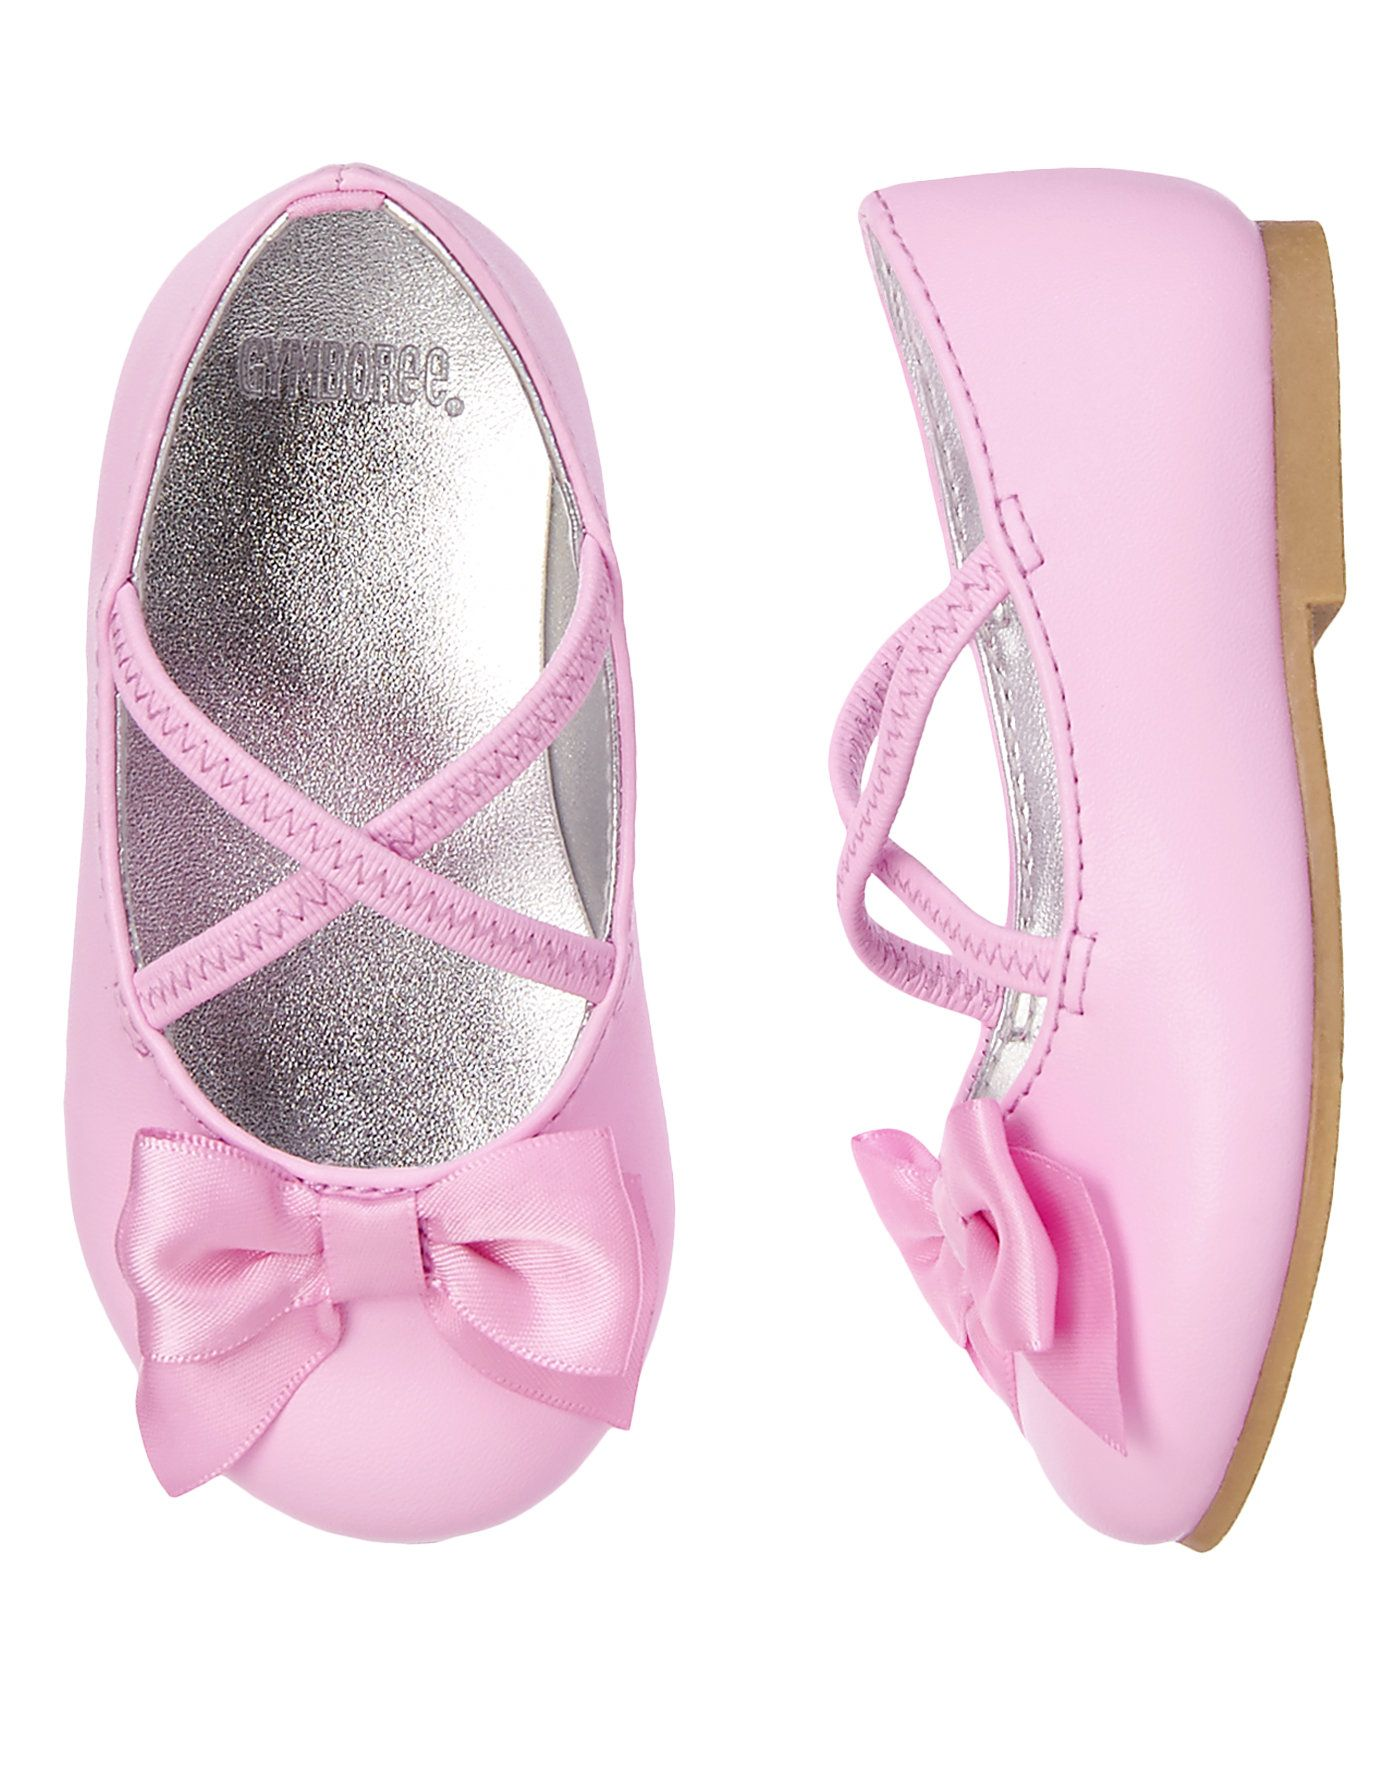 856bfed71891 Ballet Flats at Gymboree Toddler Girl Shoes